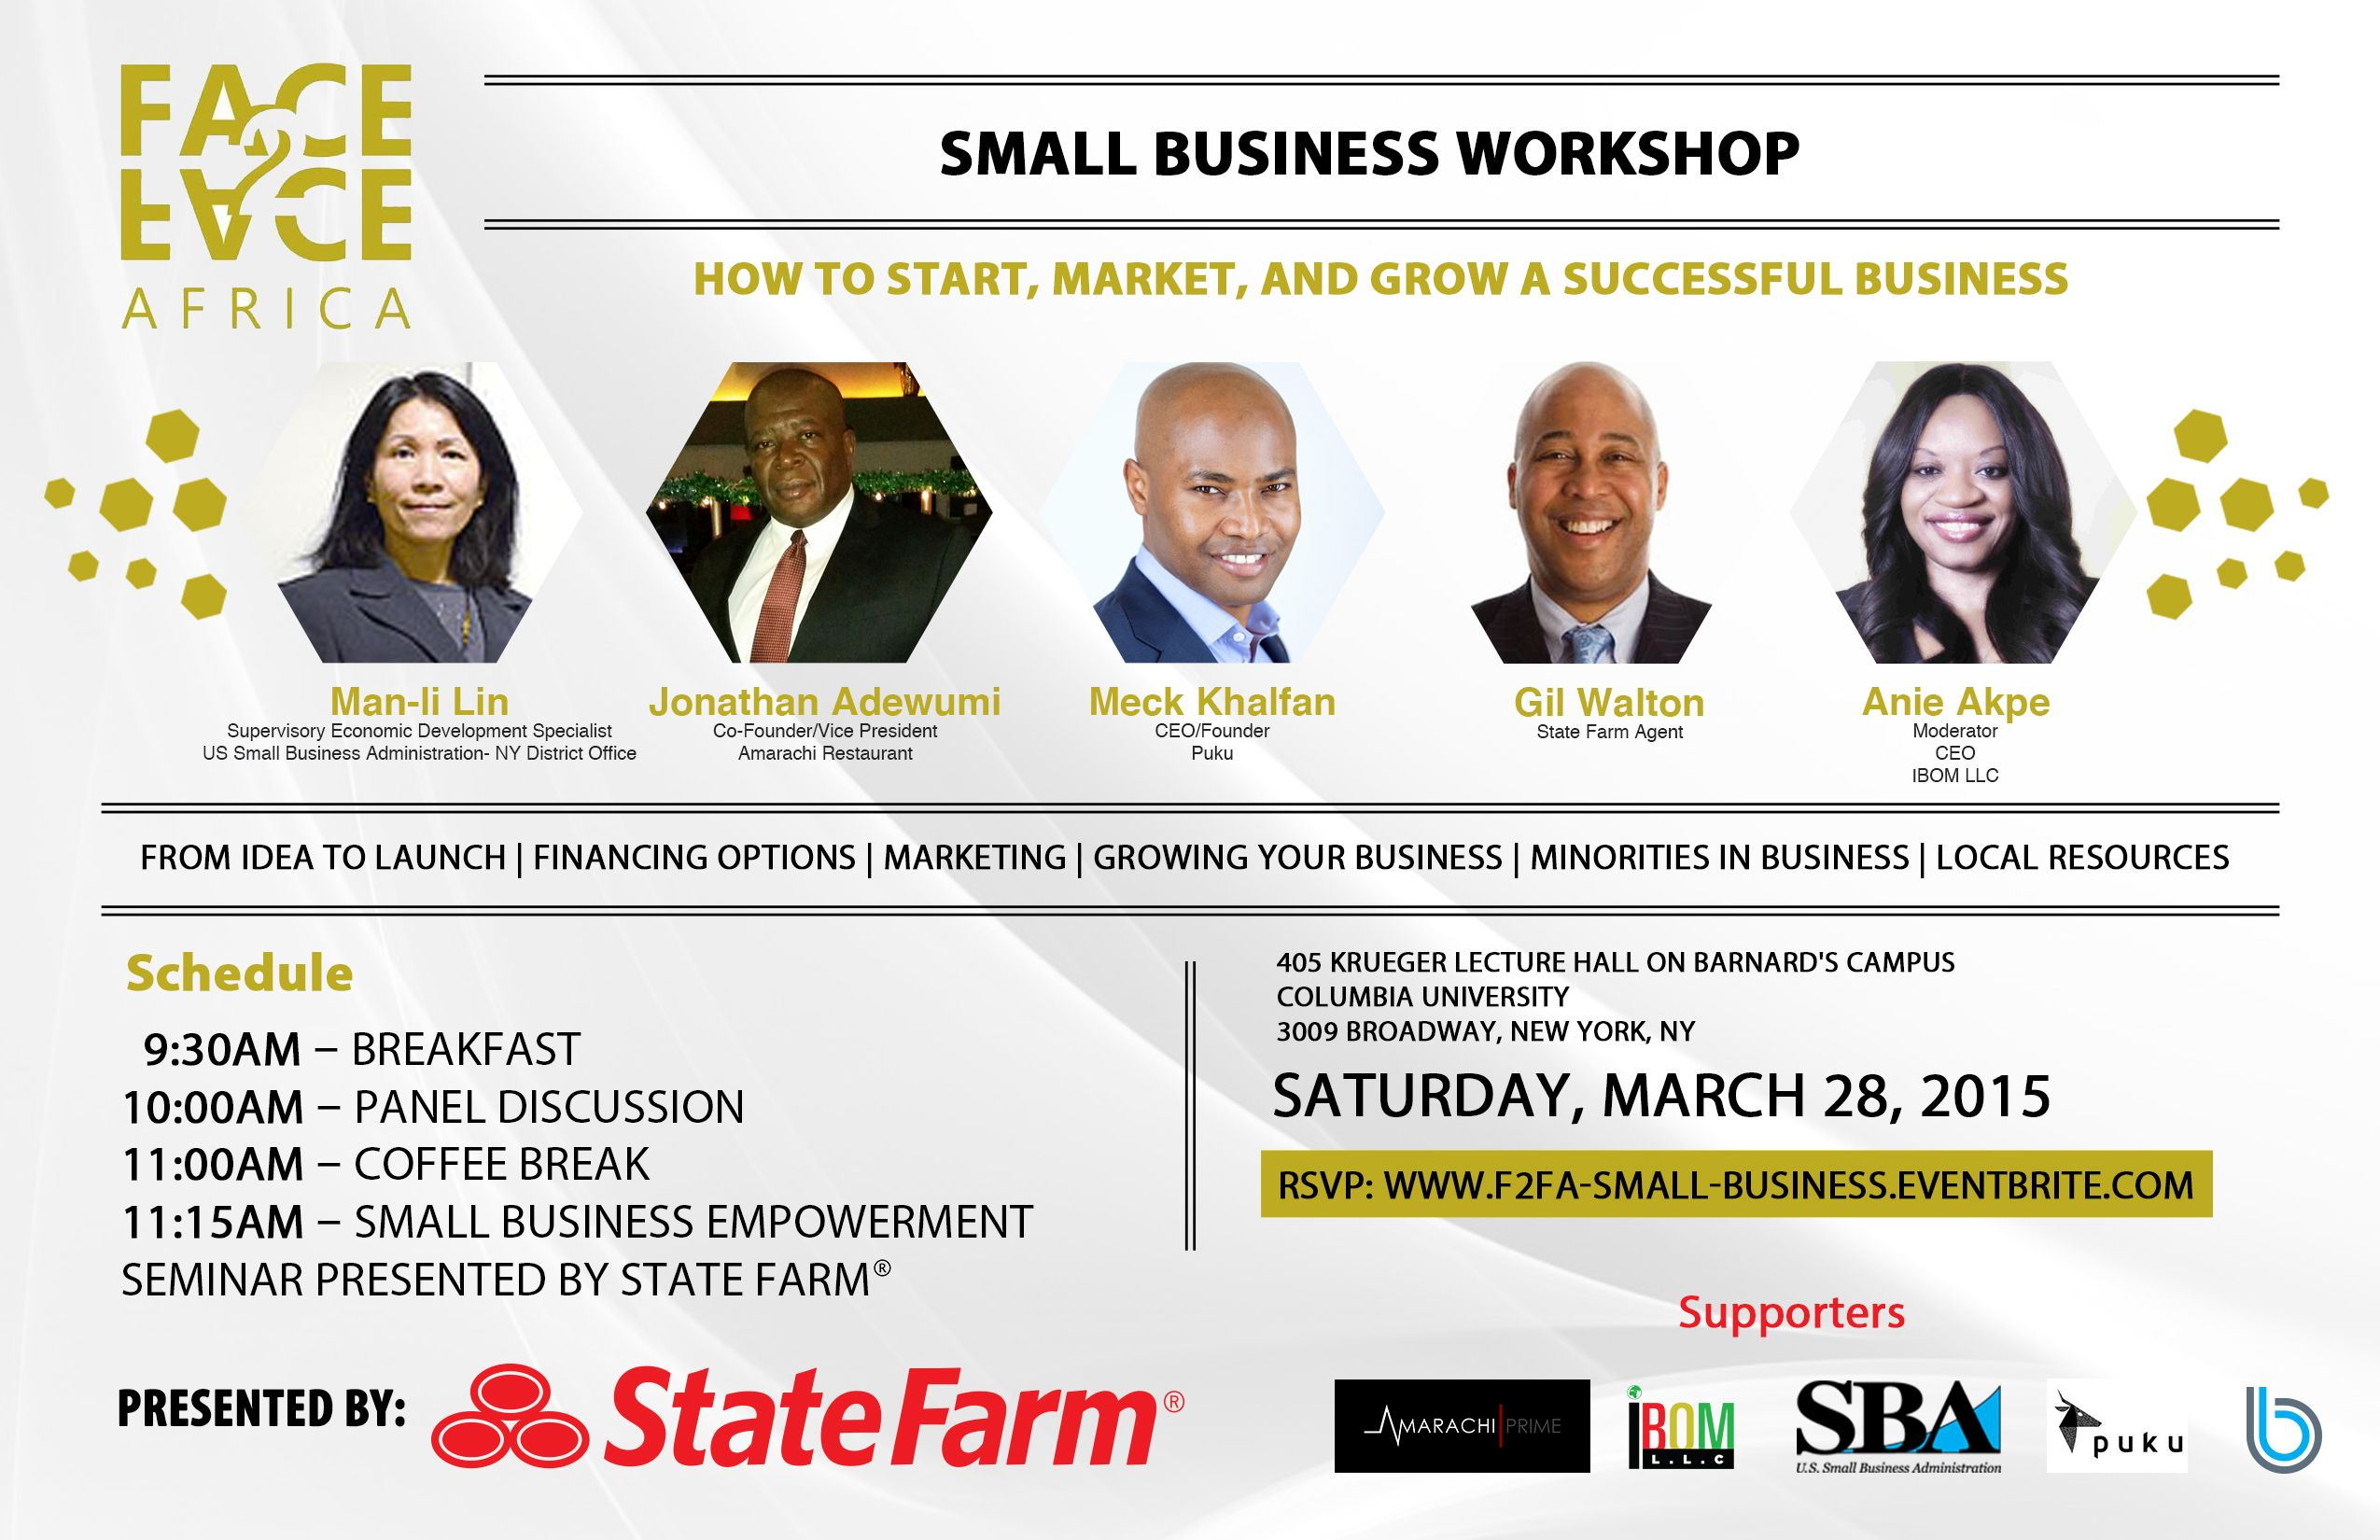 Small Business Loan Panel Discussion Workshop Flyer  Google